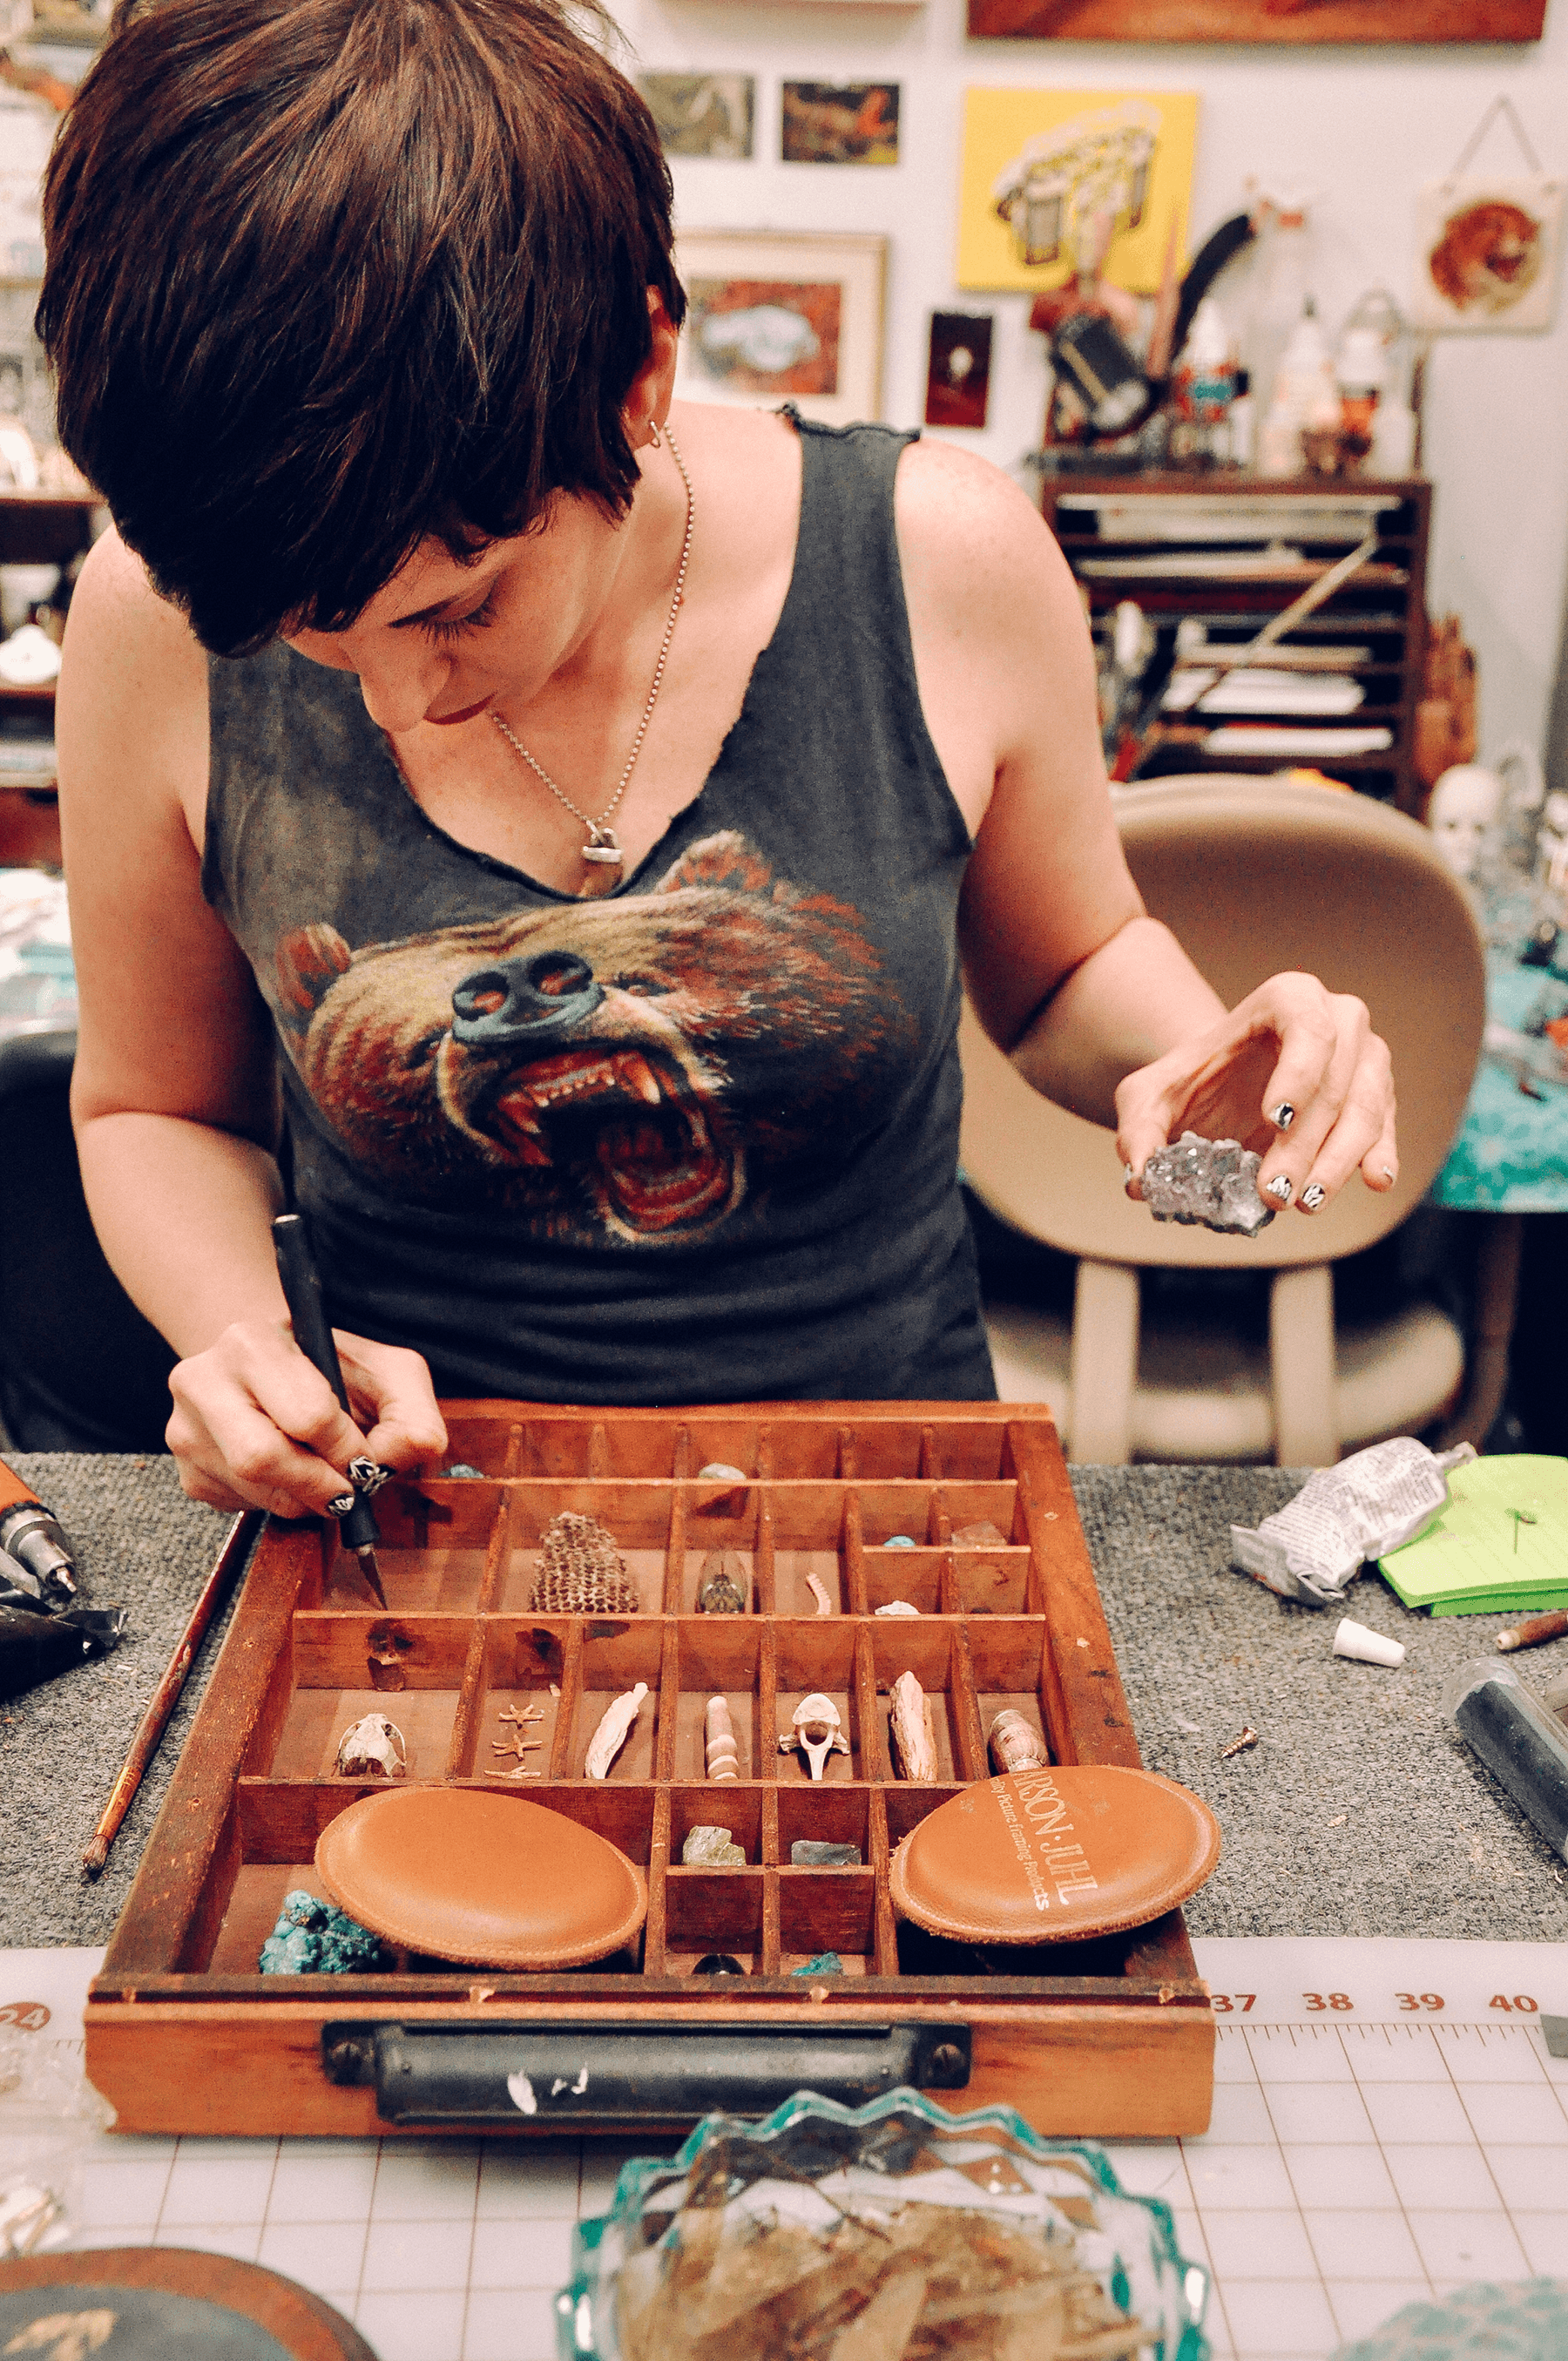 Crystal hard at work in her studio as she carefully places objects in an antique letterpress draw.